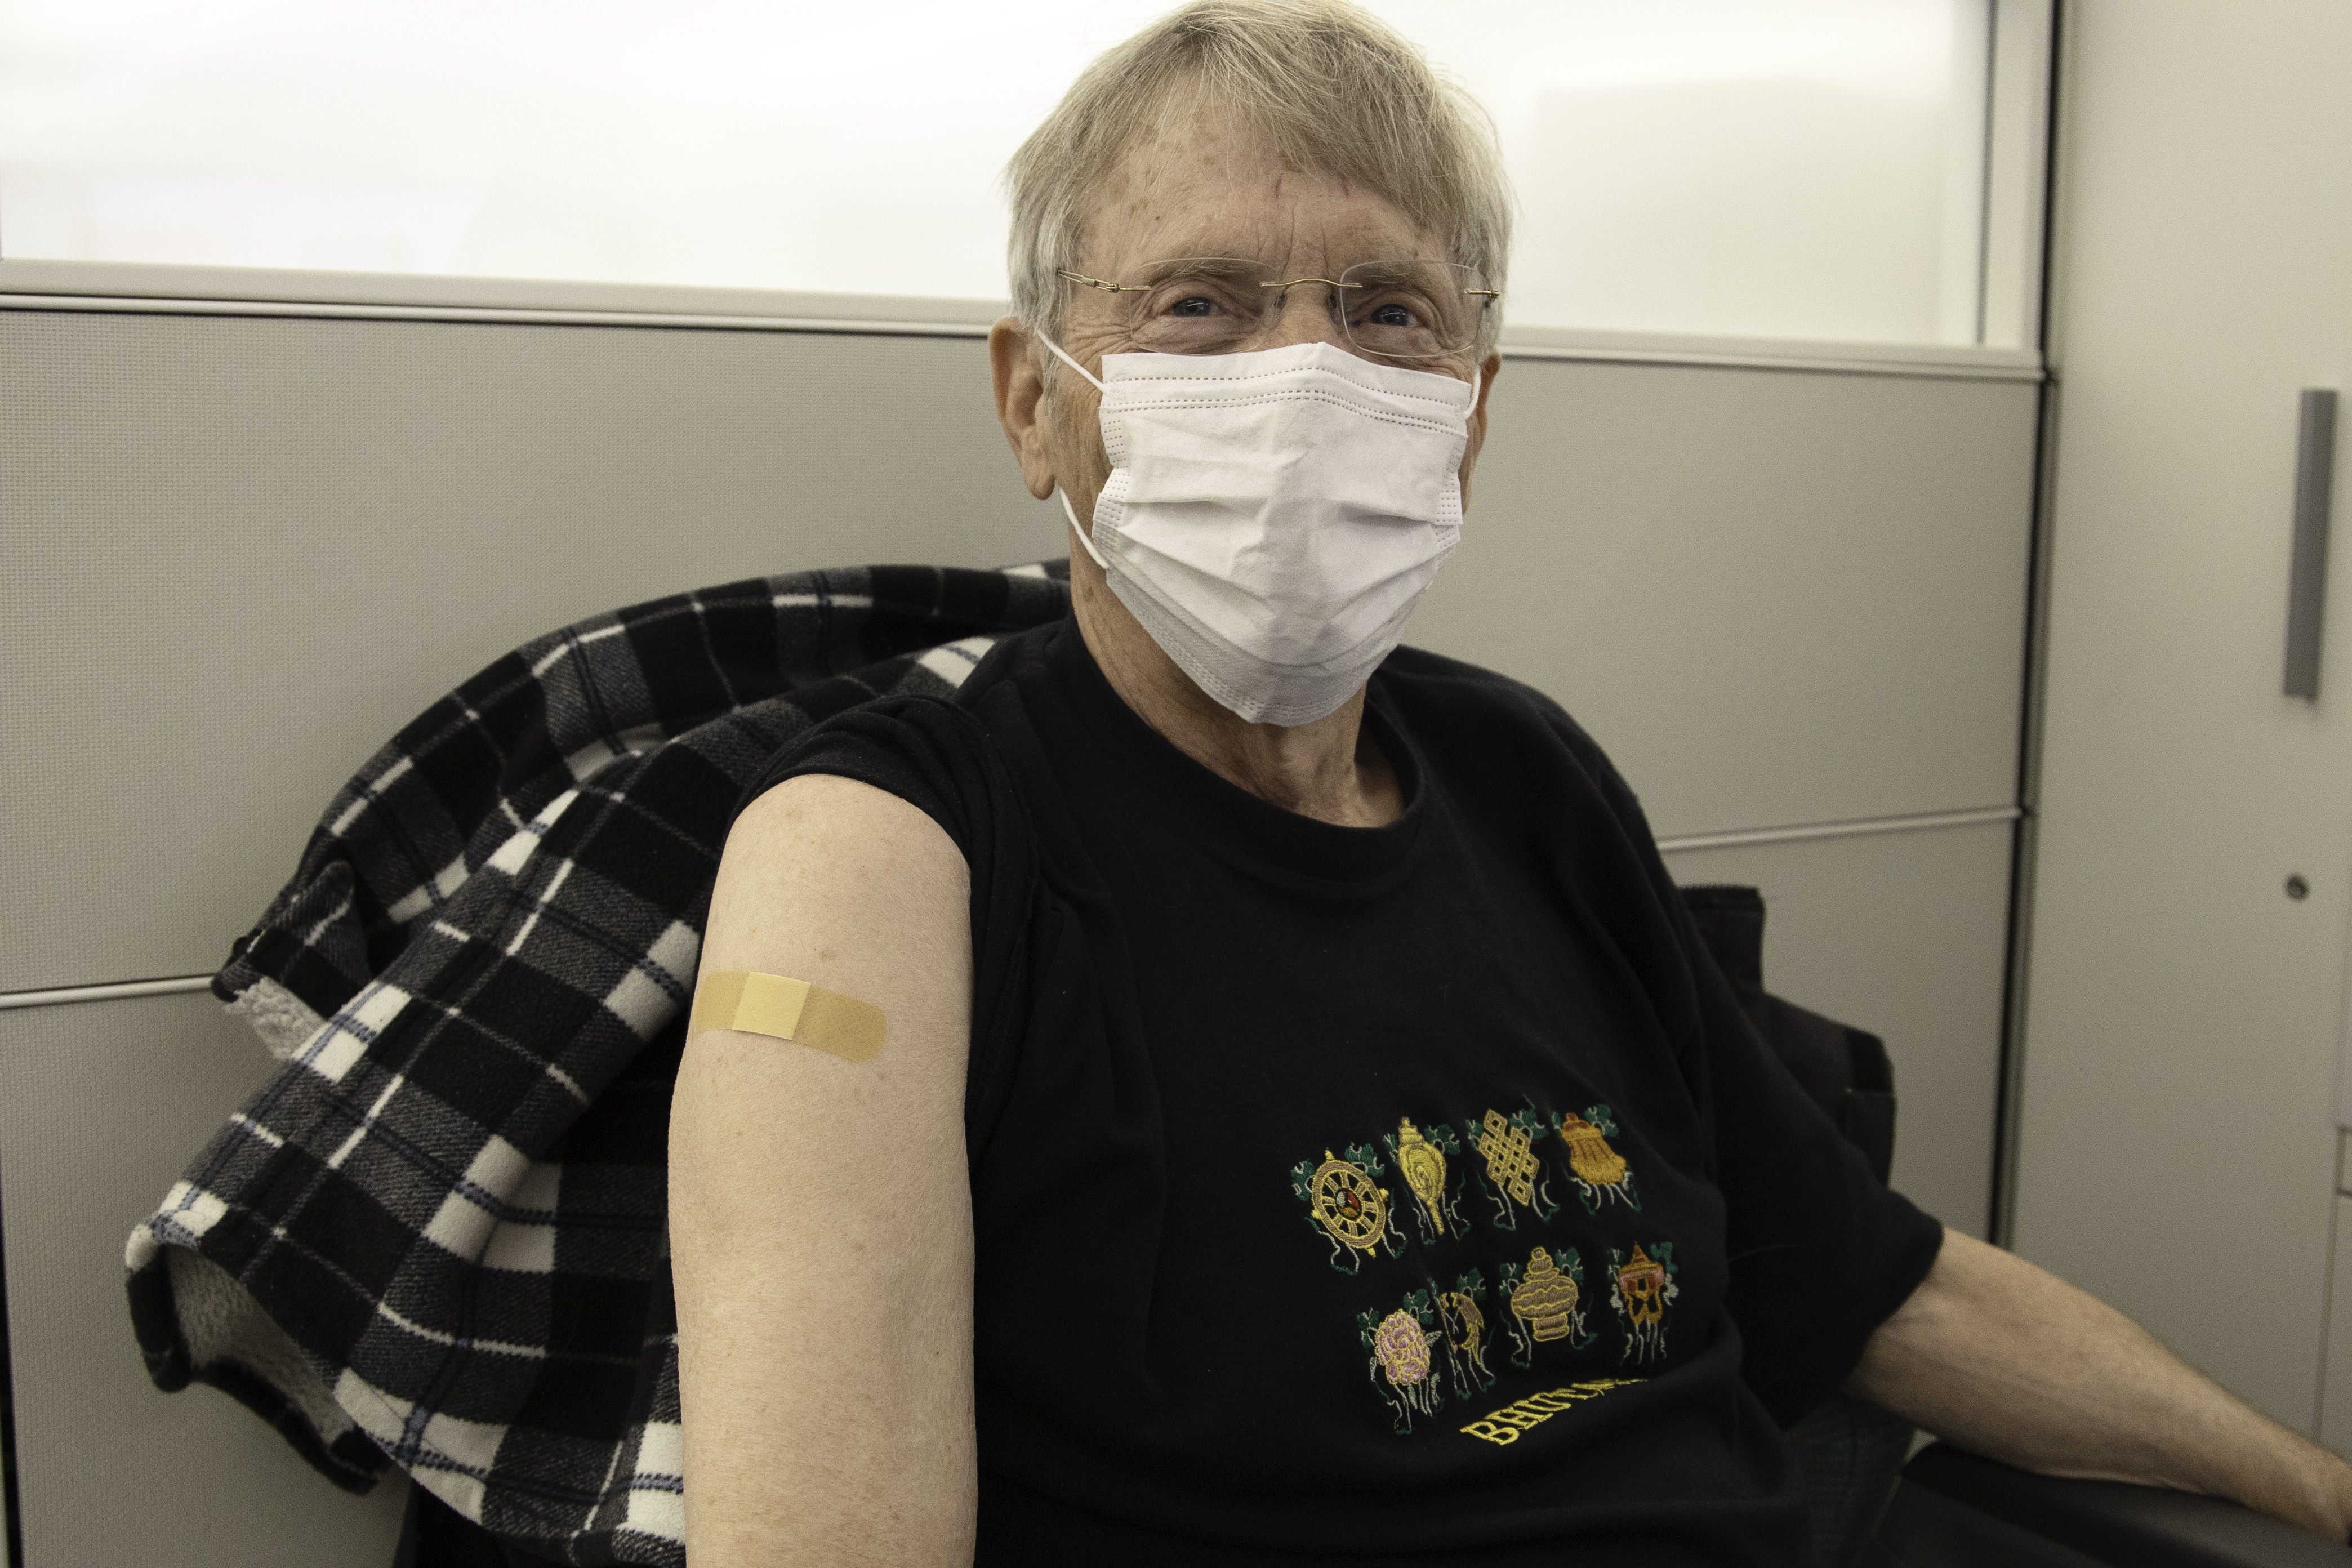 A patient poses after receiving the first dose of a COVID-19 vaccine